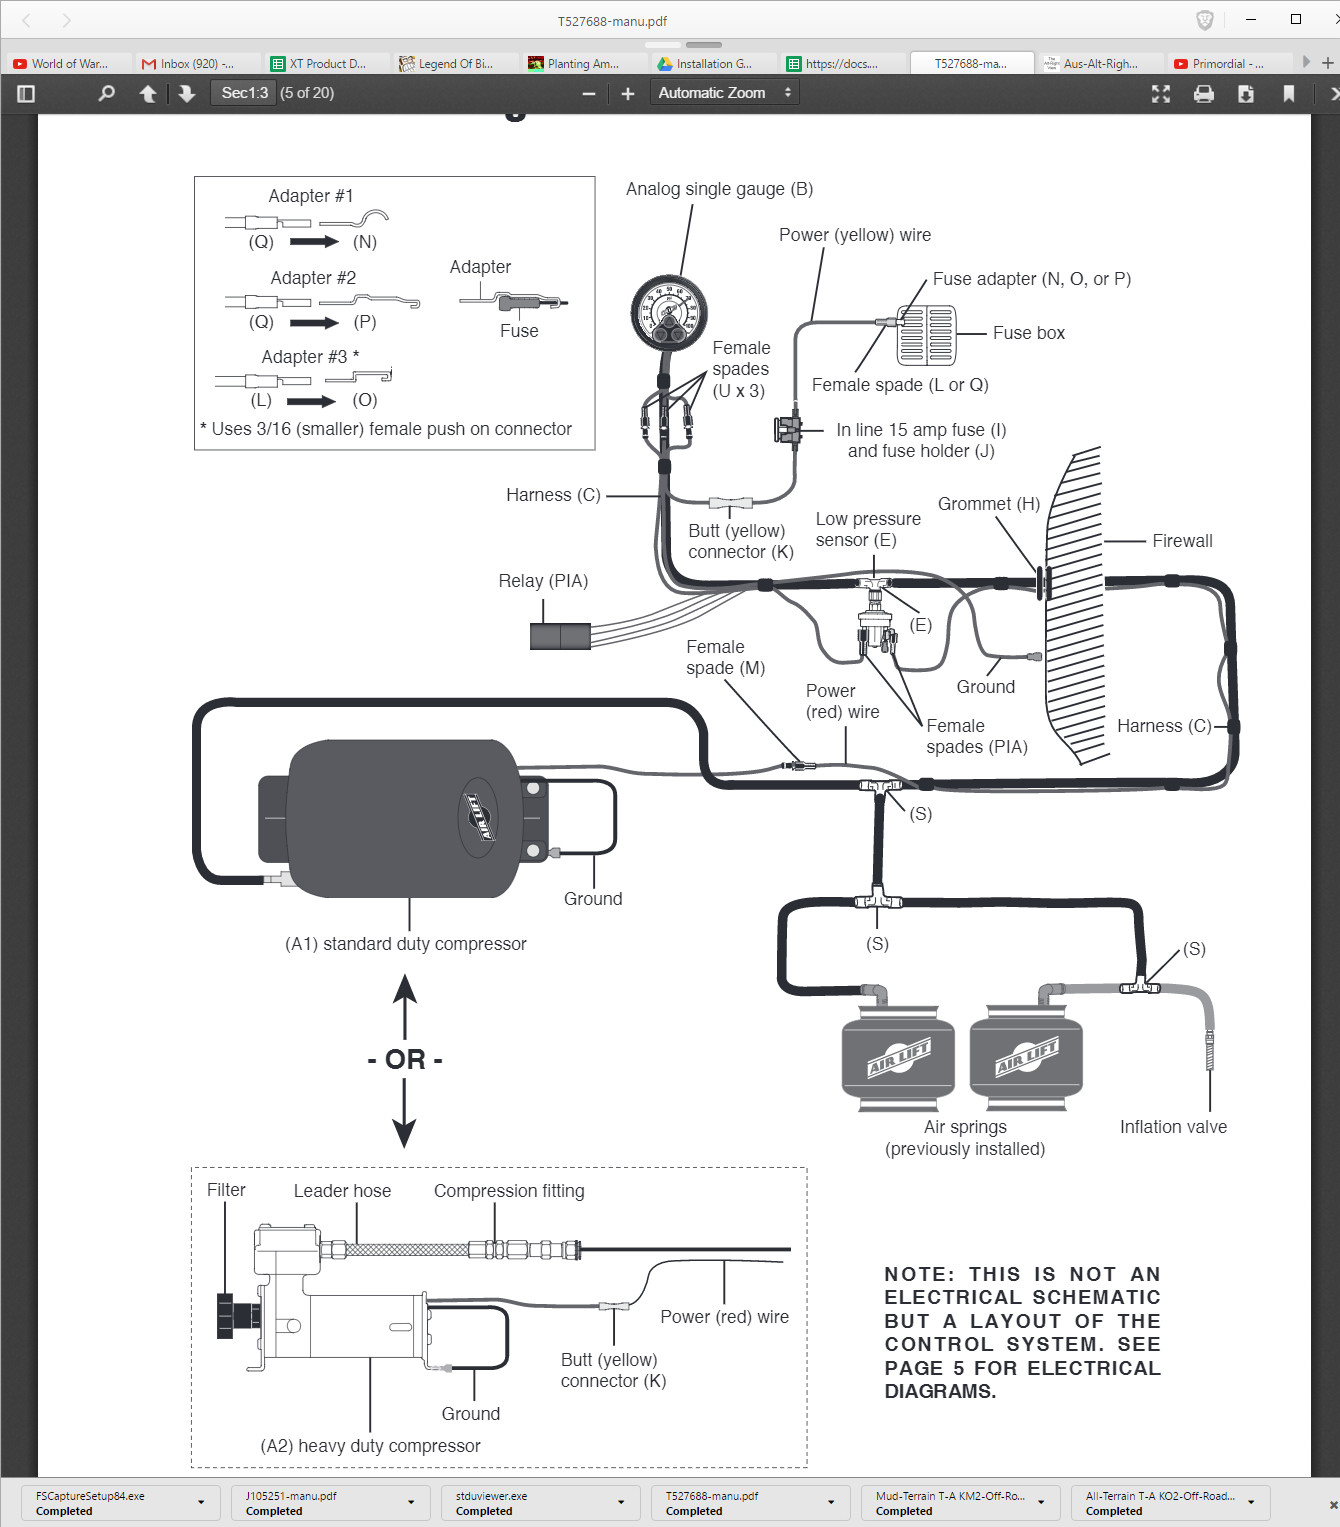 Air Lift Wiring Diagram - 1.14.petraoberheit.de • Air Lift V Wiring Diagram on air lift warranty, compressor diagram, air lift compressor, air bag schematics, air lift assembly, air bag system diagram, peterbilt air line diagram, air suspension diagram, lift axle control diagram, air lift piston, air lift relay, air lift valve, air shock diagram, air lift system, car lift diagram, air lift pump diagram, lift axle plumbing diagram, air lift control panel, air ride diagram, air lift remote control,